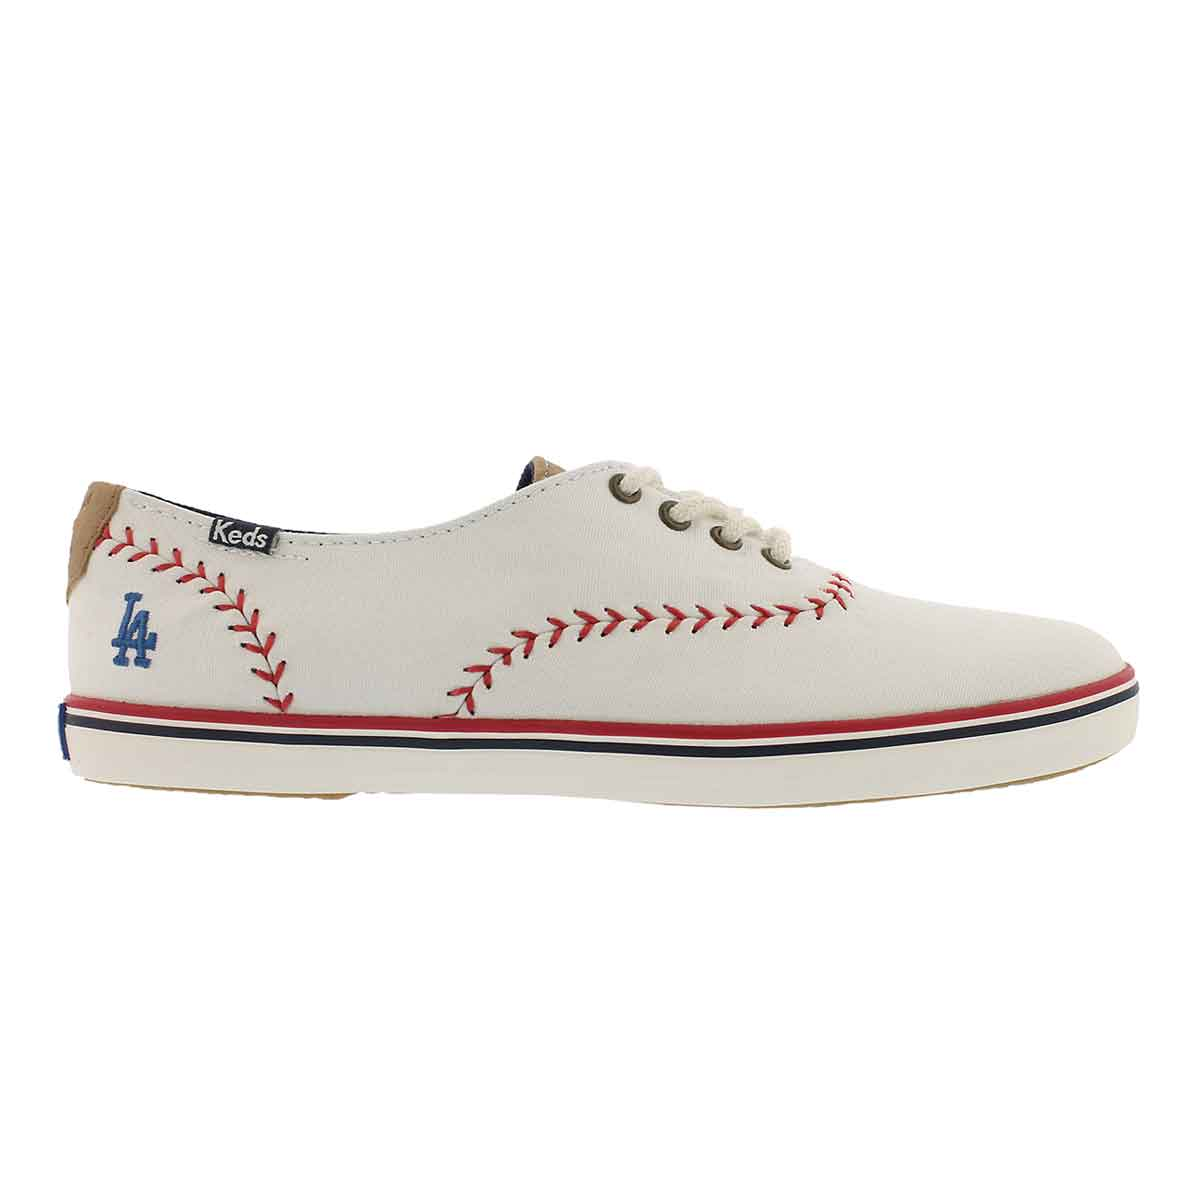 Lds Champion Pennant dodgers cream snkr